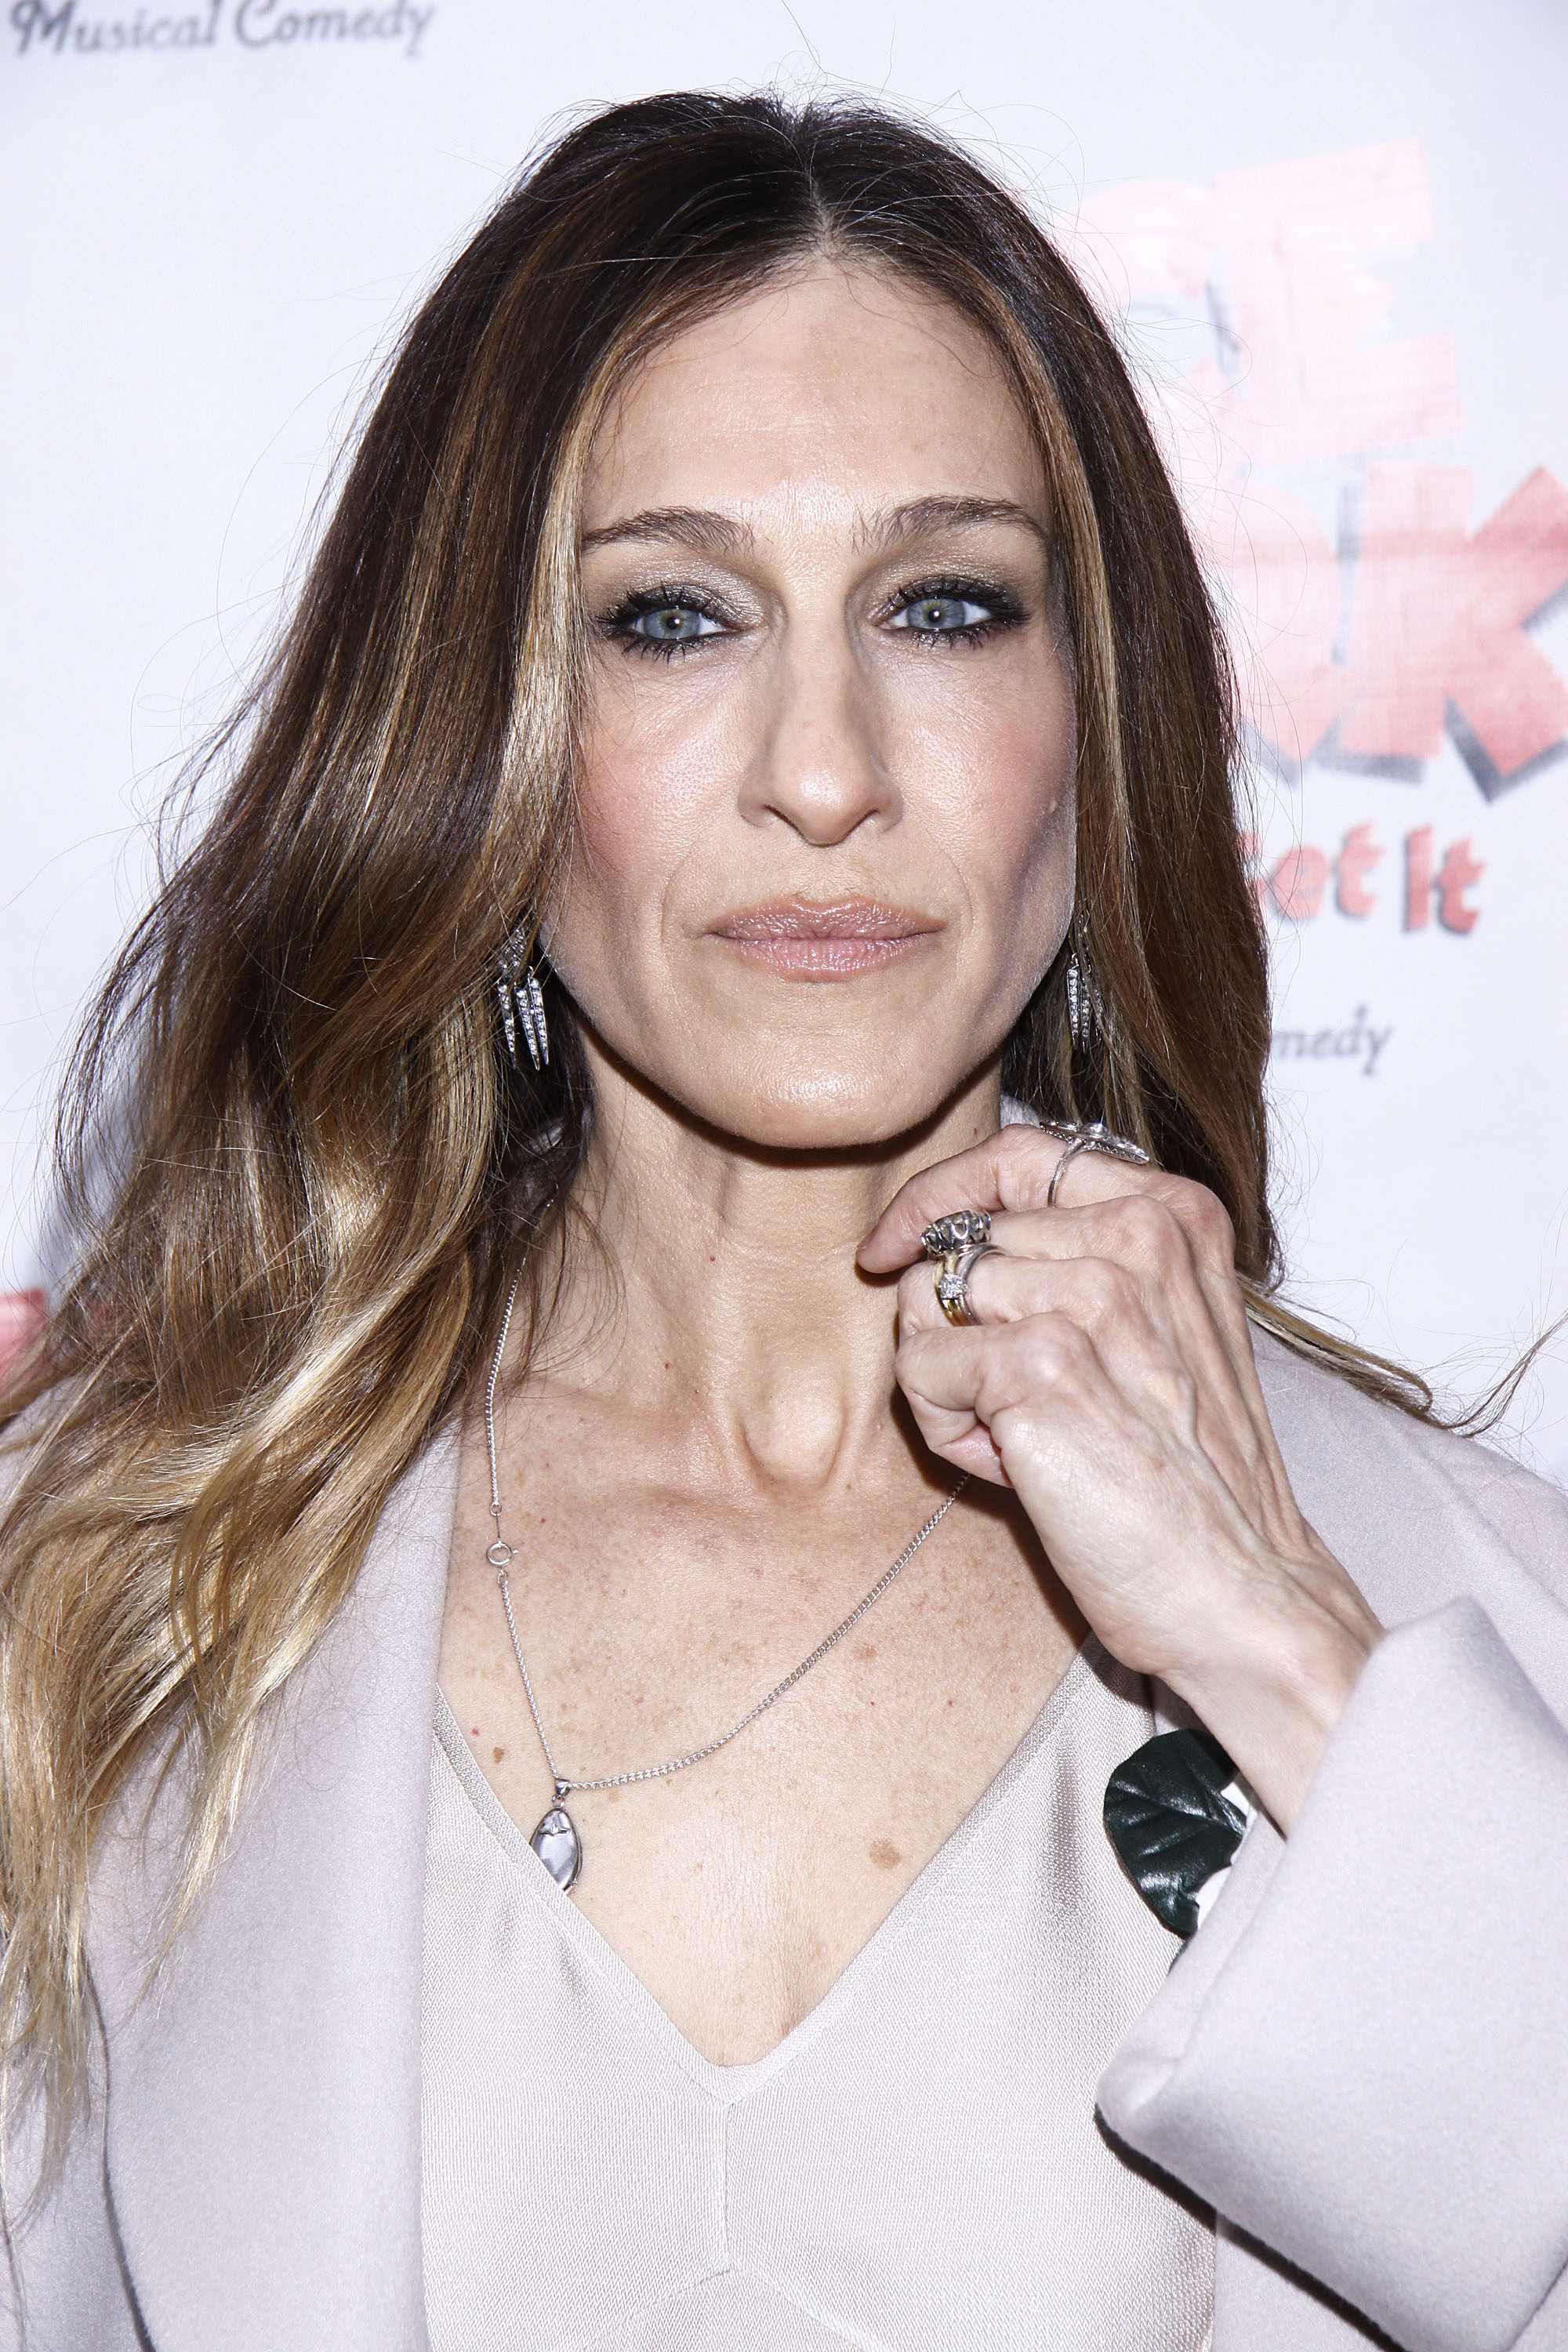 With that in mind, take a look at the Sarah Jessica Parker photo below.